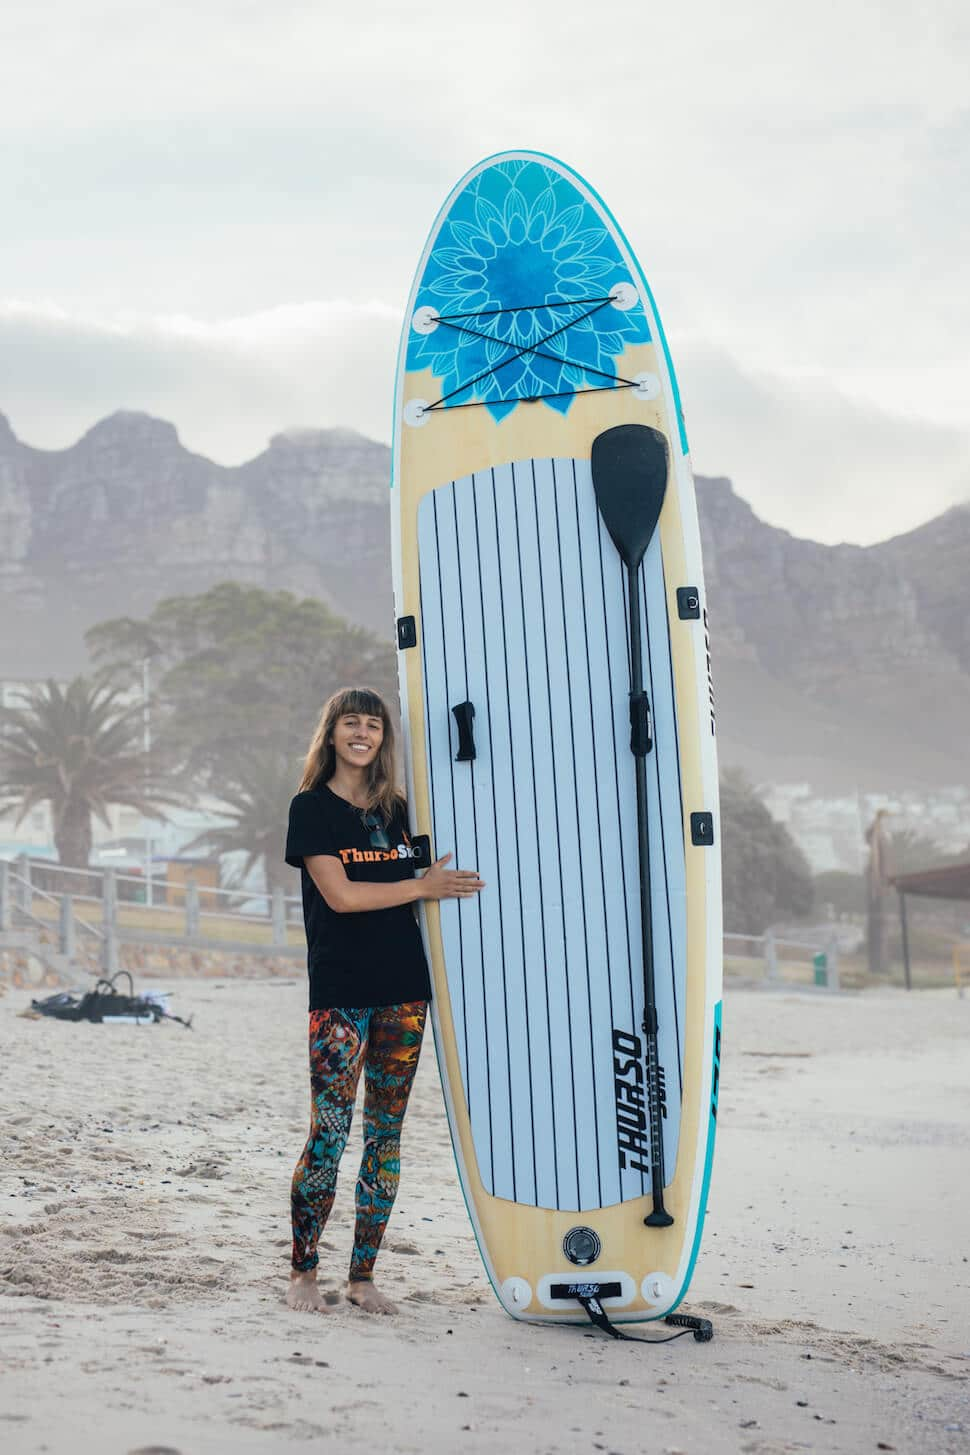 How to Choose the Best SUP Shape for You: Comparing All-Around, Touring, and Yoga Paddle Board Designs